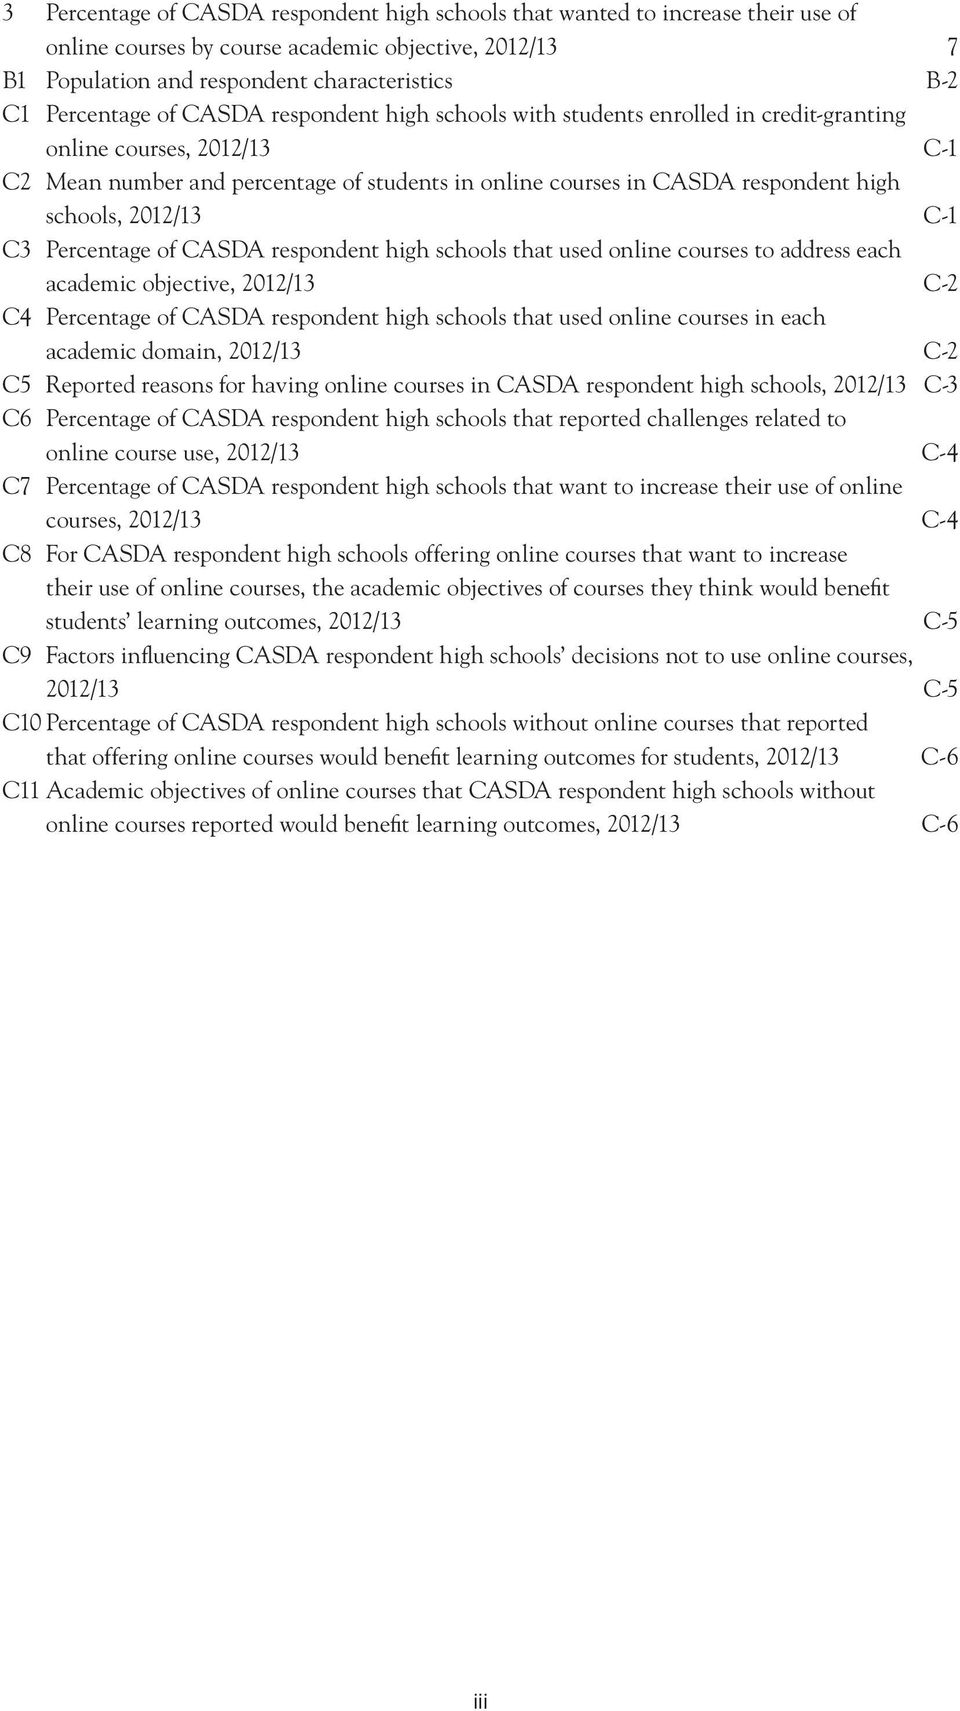 C3 age of CASDA respondent high schools that used online courses to address each academic objective, 2012/13 C-2 C4 age of CASDA respondent high schools that used online courses in each academic